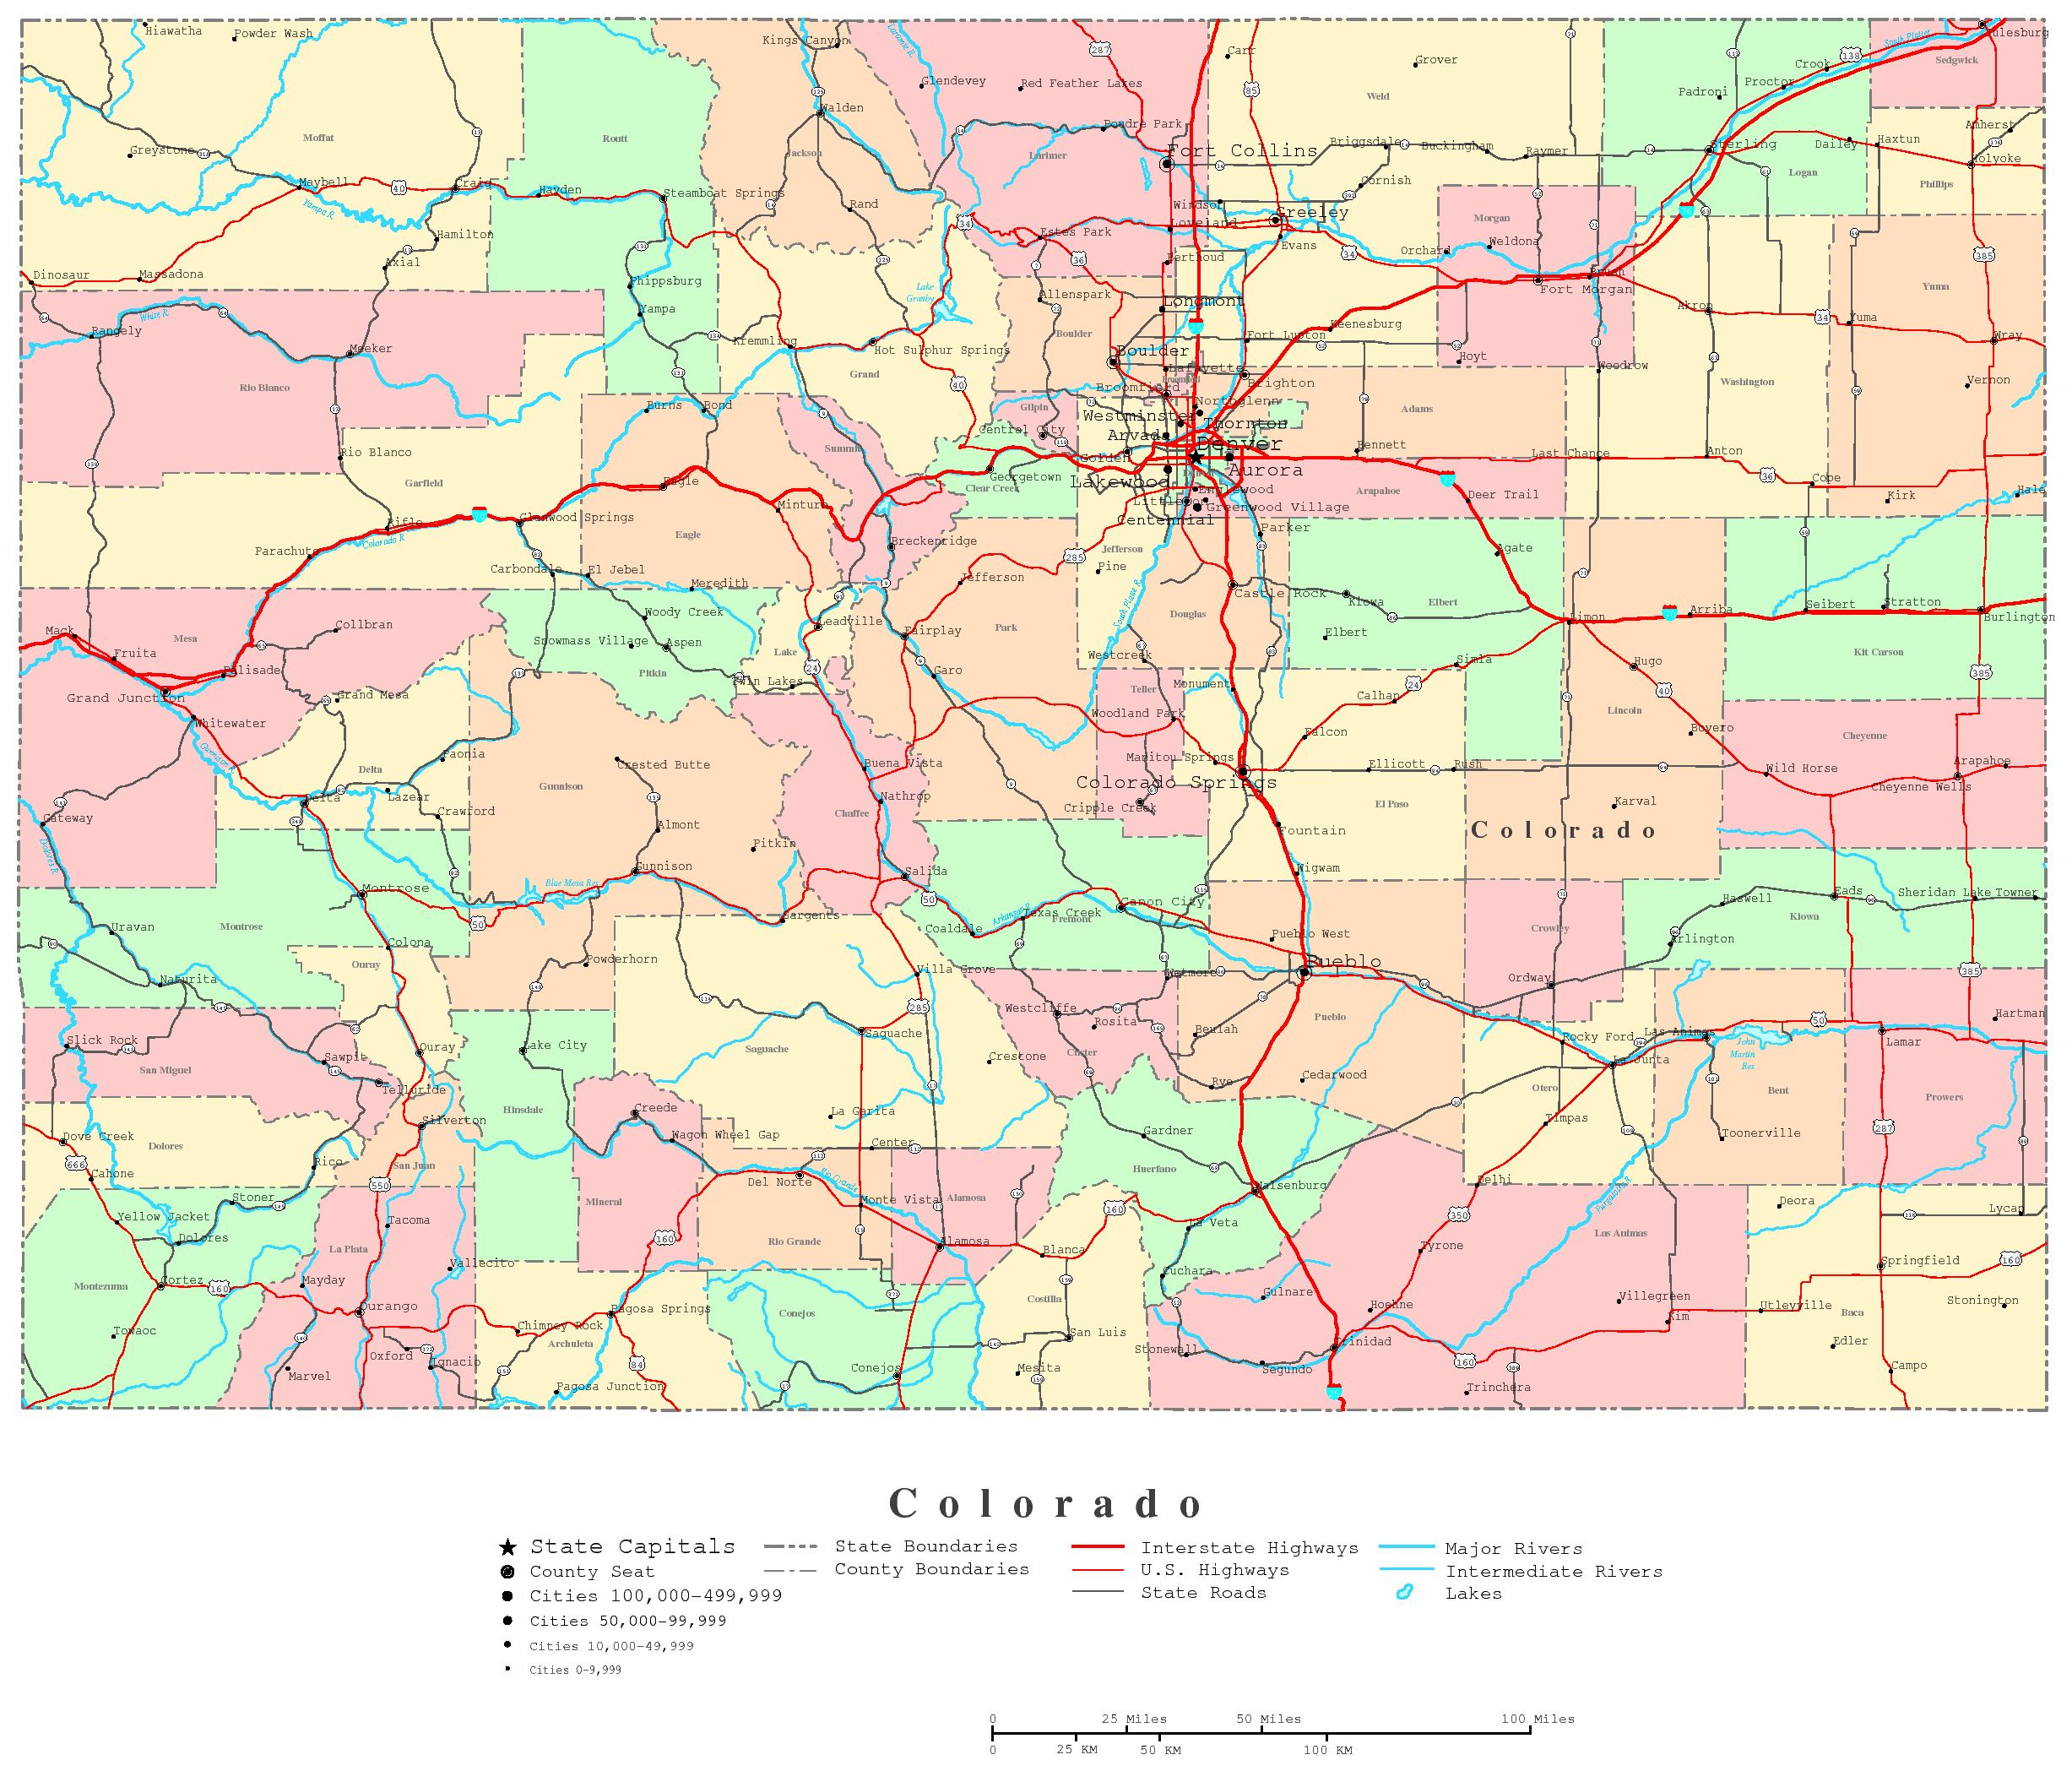 Colorado Printable Map - Printable State Road Maps